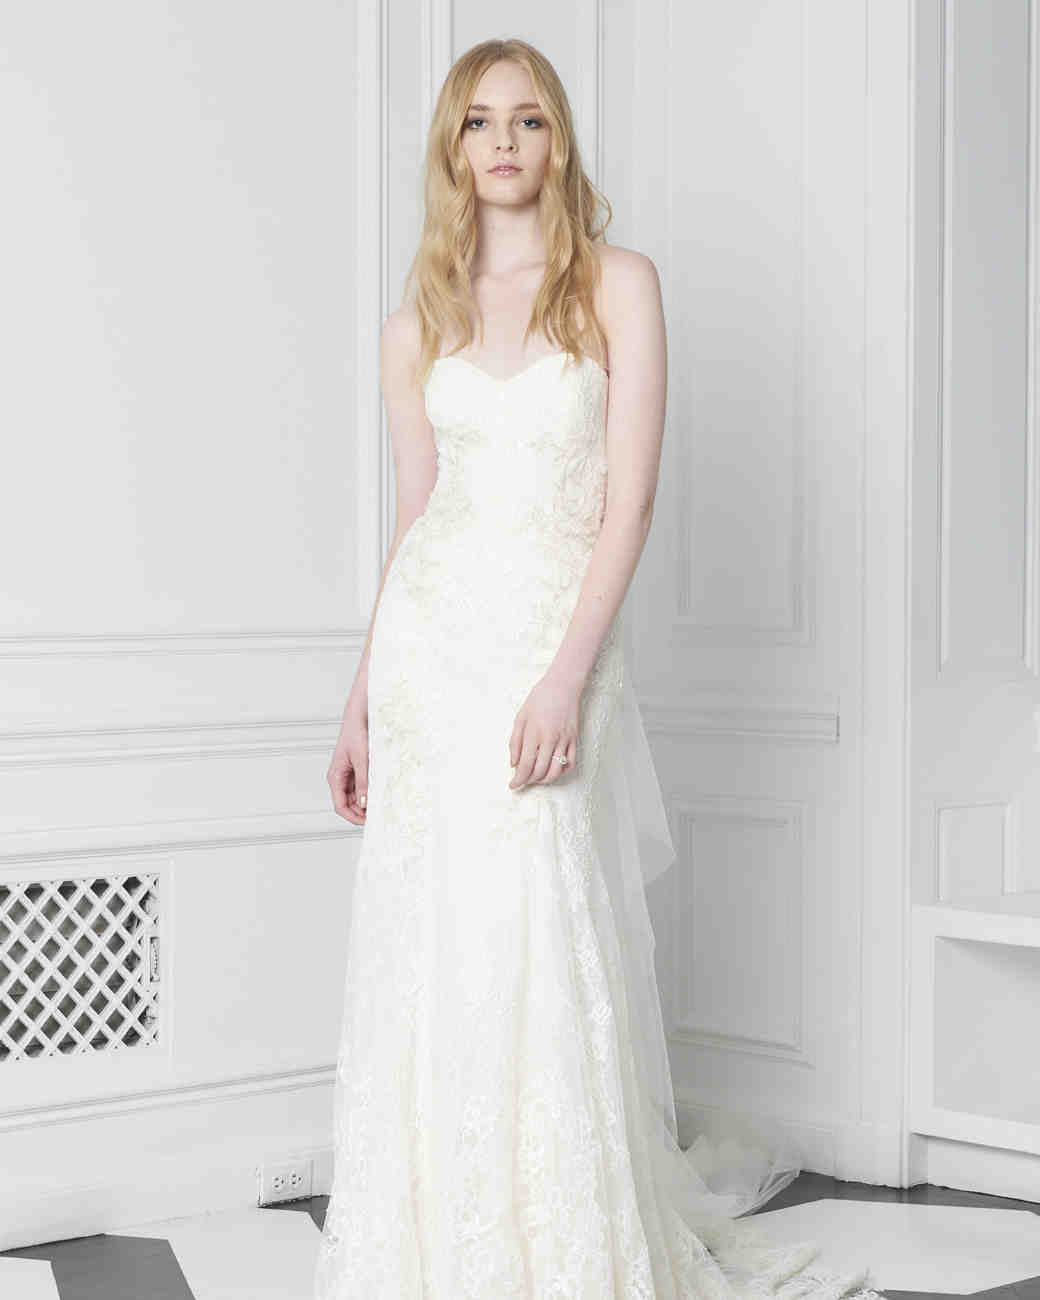 Bliss by Monique Lhuillier Fall 2018 Wedding Dress Collection ...